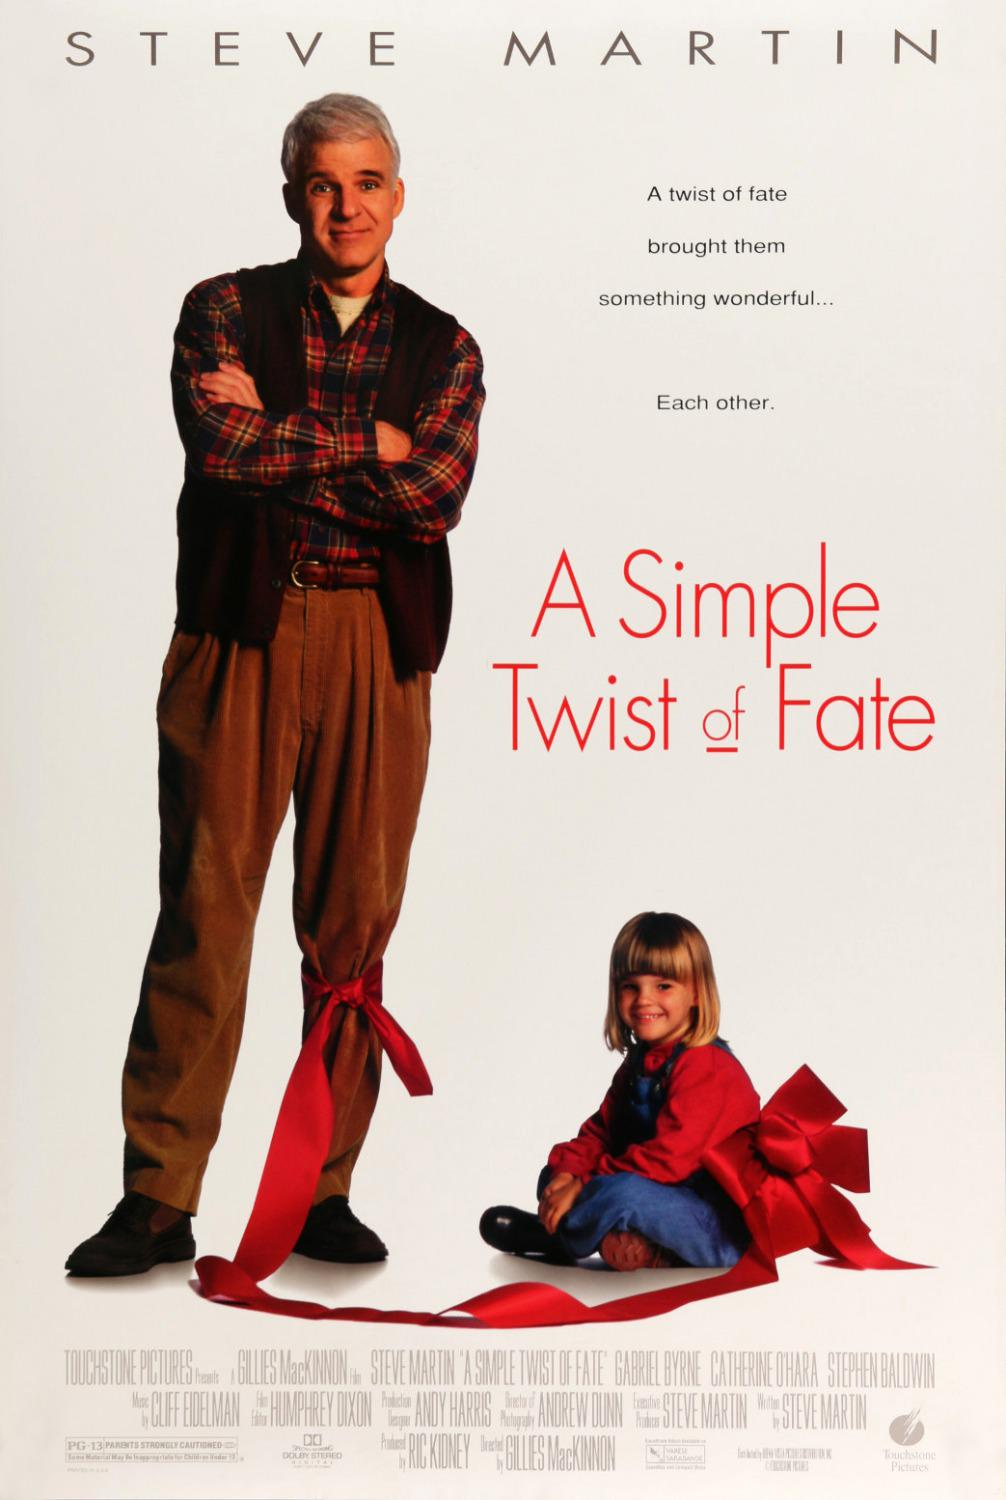 Simple twist of fate - Uno Strano Scherzo del Destino - Steve Martin - poster